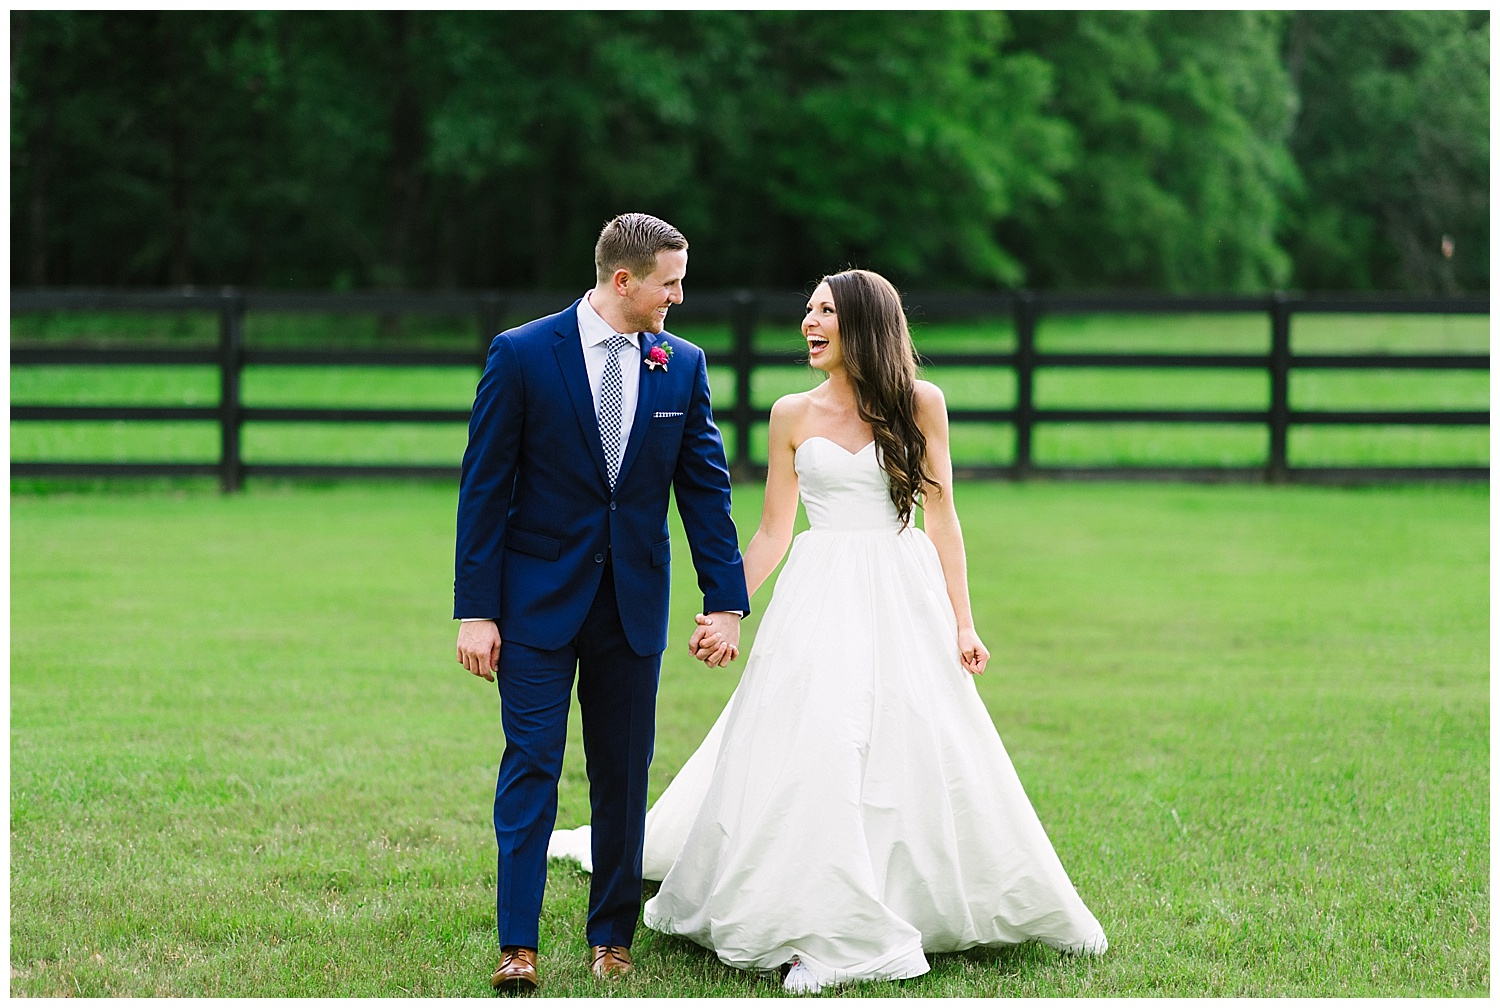 How To Incorporate Lawn Games Into Your Wedding The White Sparrow